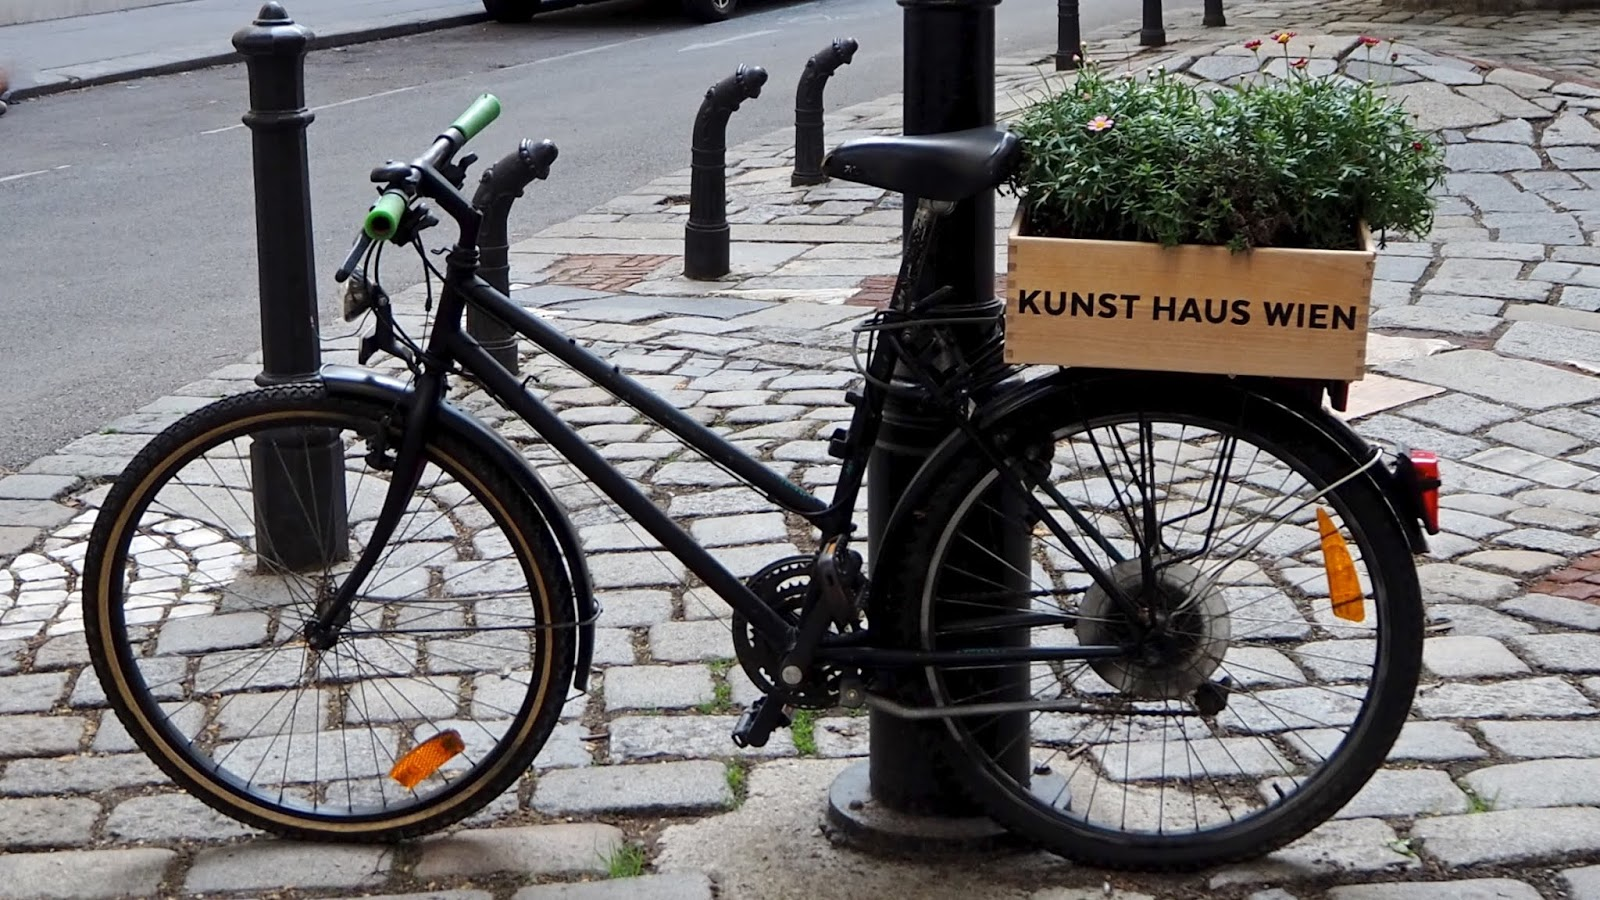 Kunst Haus Wien Bicycle with Planter